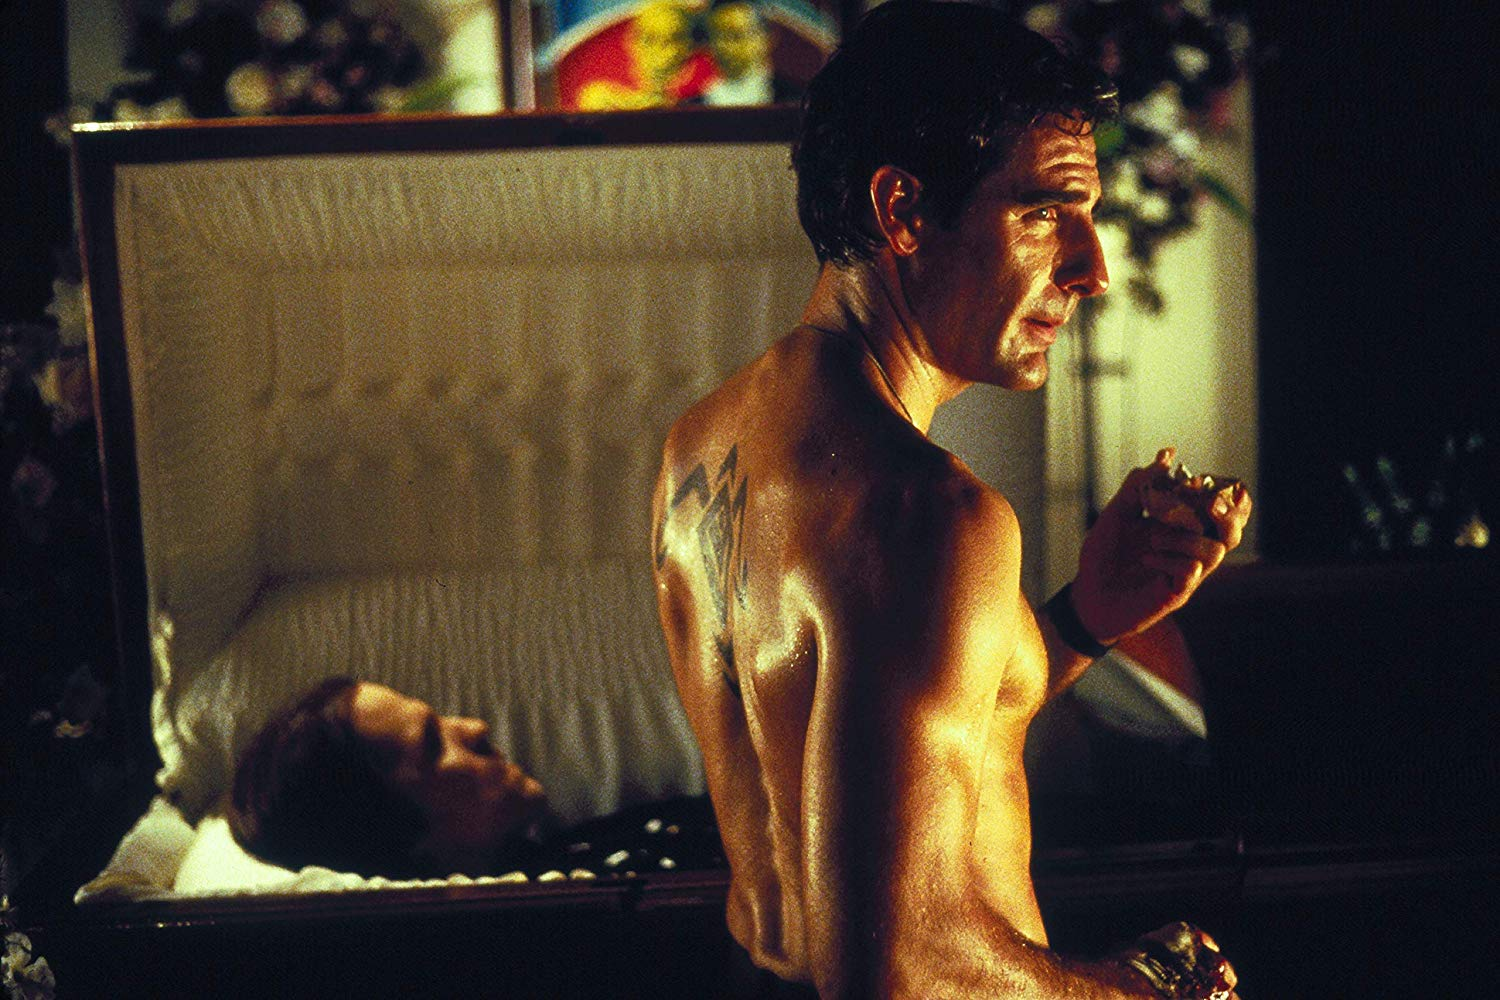 Harry D'Amour (Scott Bakula) in Lord of Illusions (1995)